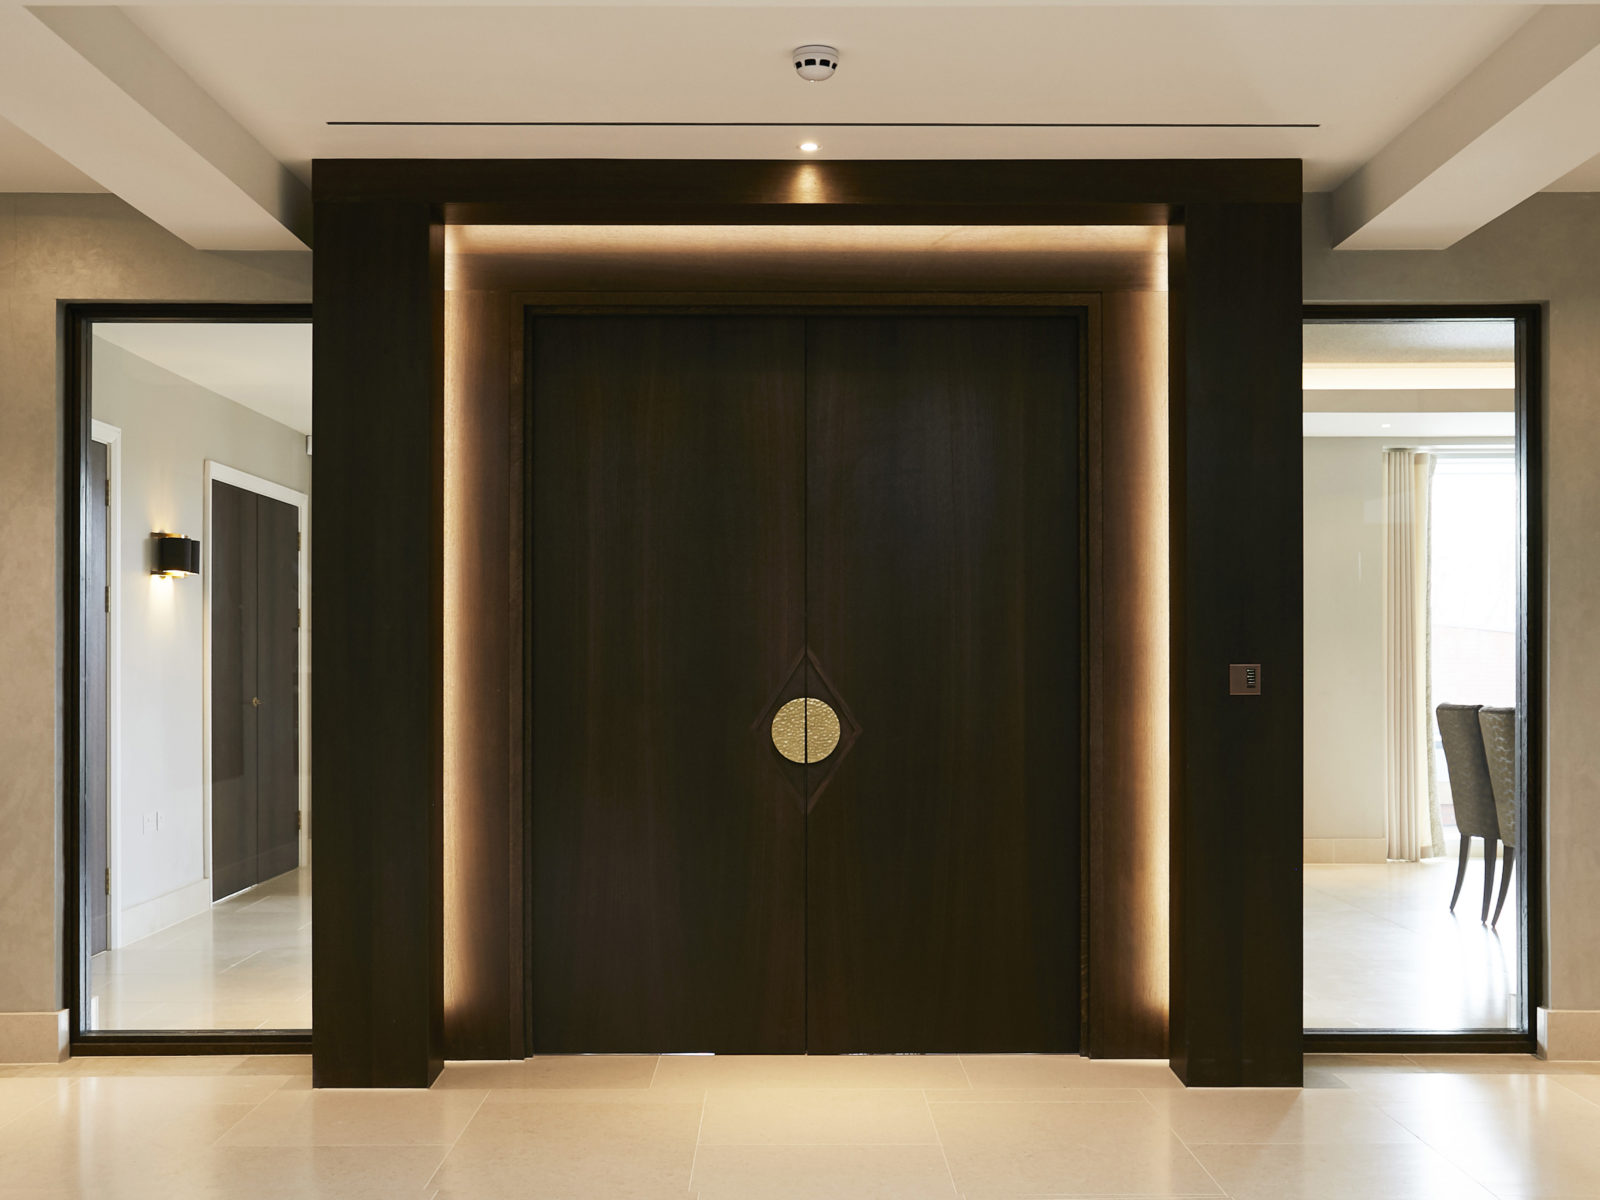 bespoke doors with frame and LED lighting surround